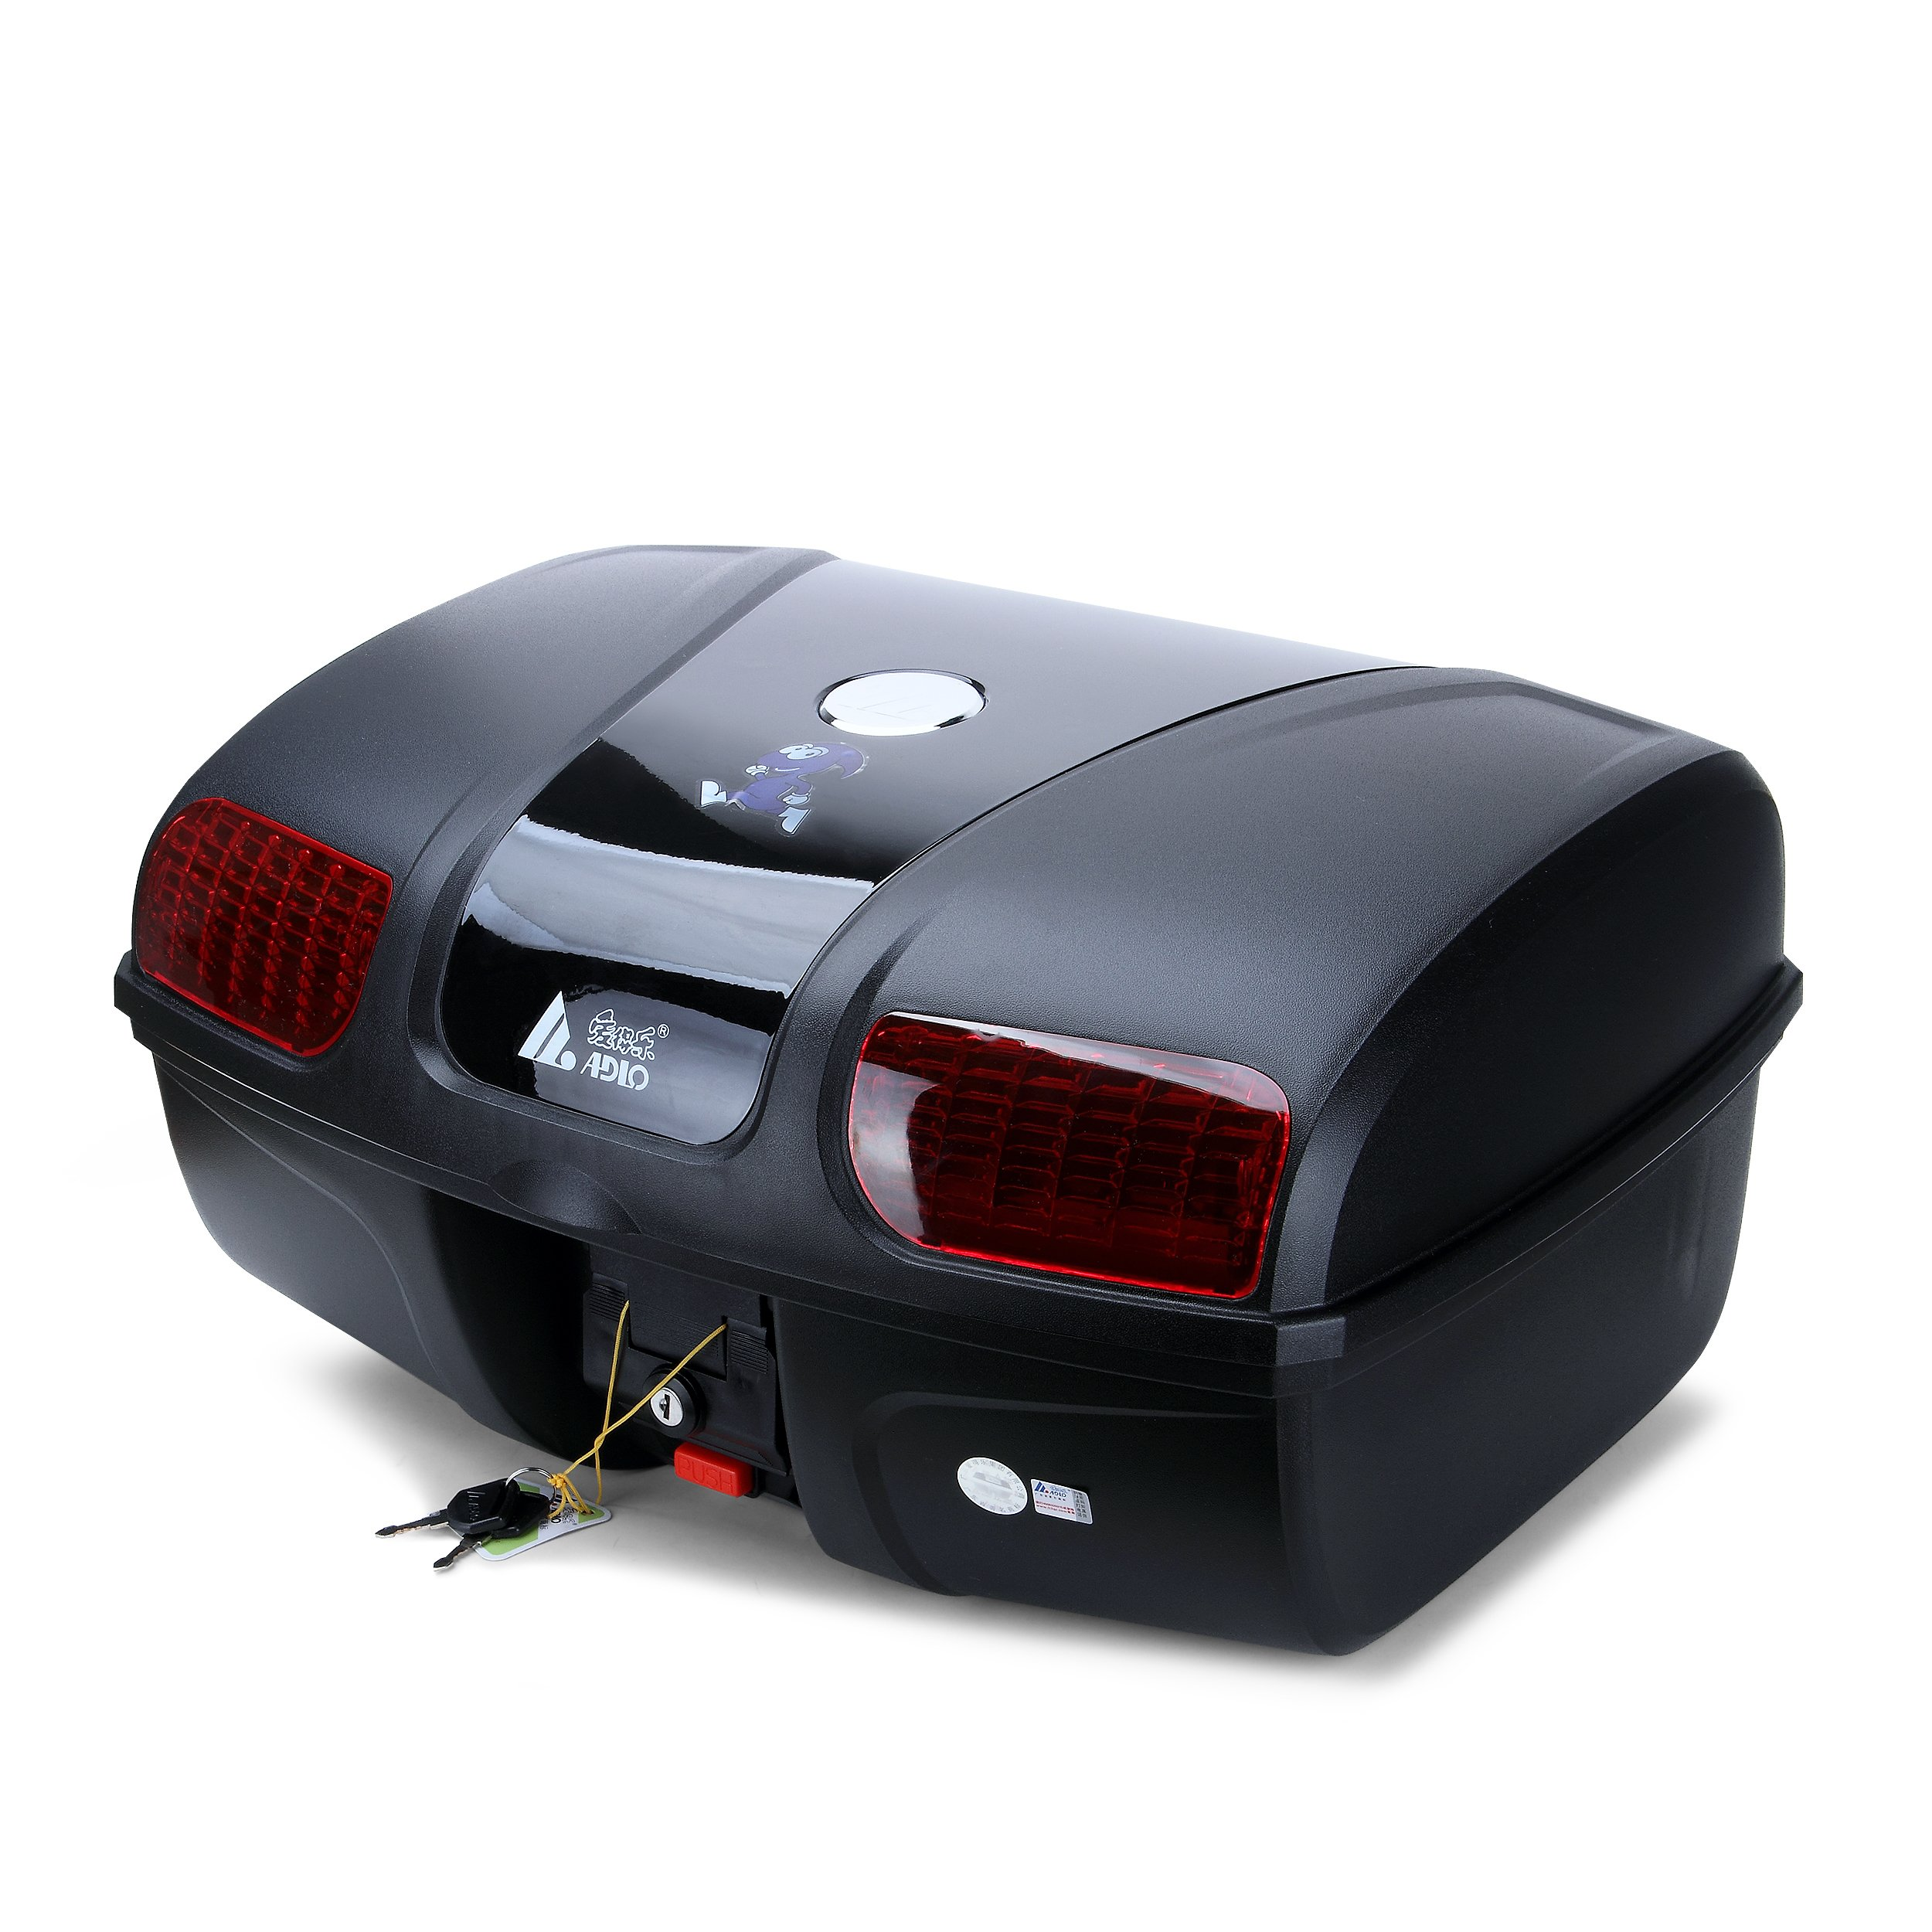 AUTOINBOX Universal Motorcycle Rear Top Box Tail Trunk Luggage Case,47 Litre Hard Case with Mounting Hardare ,Black